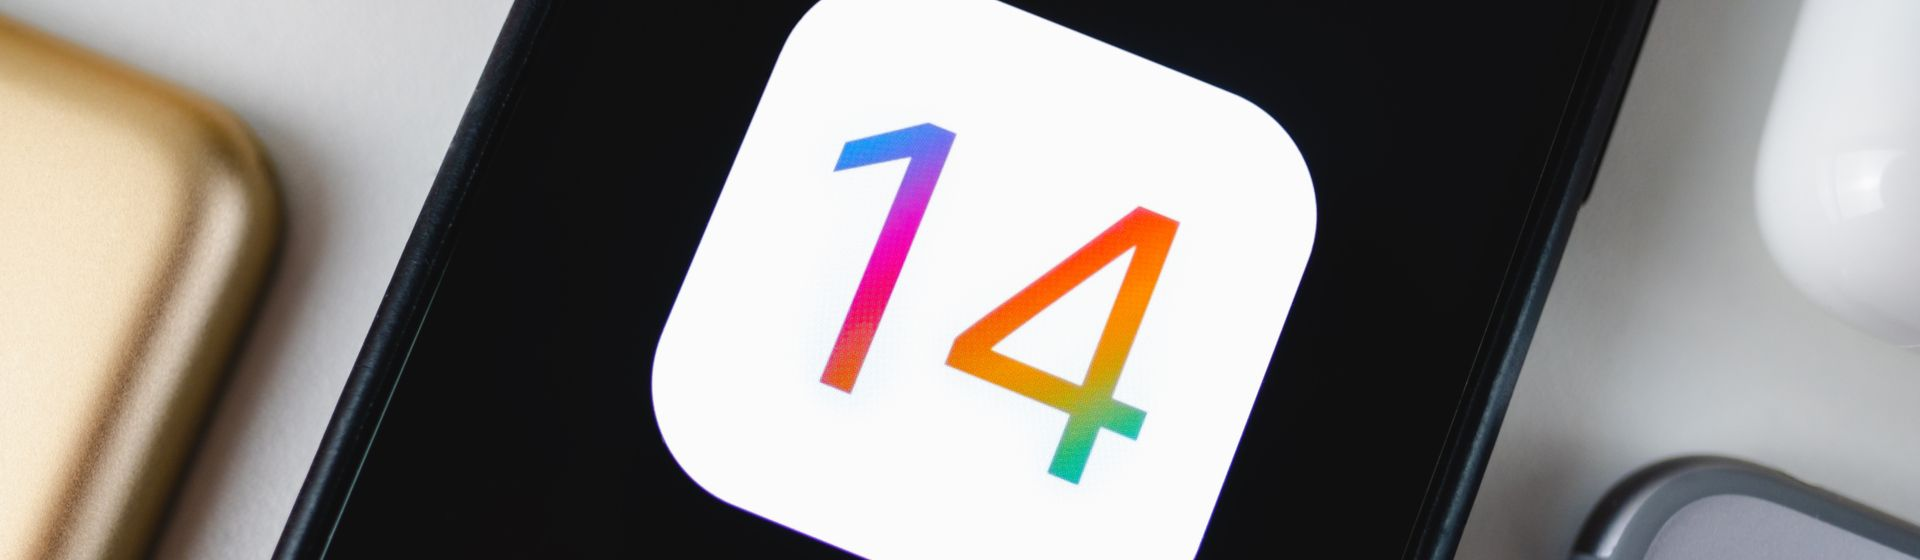 iOS 14 beta: como instalar a versão de testes do sistema da Apple no iPhone